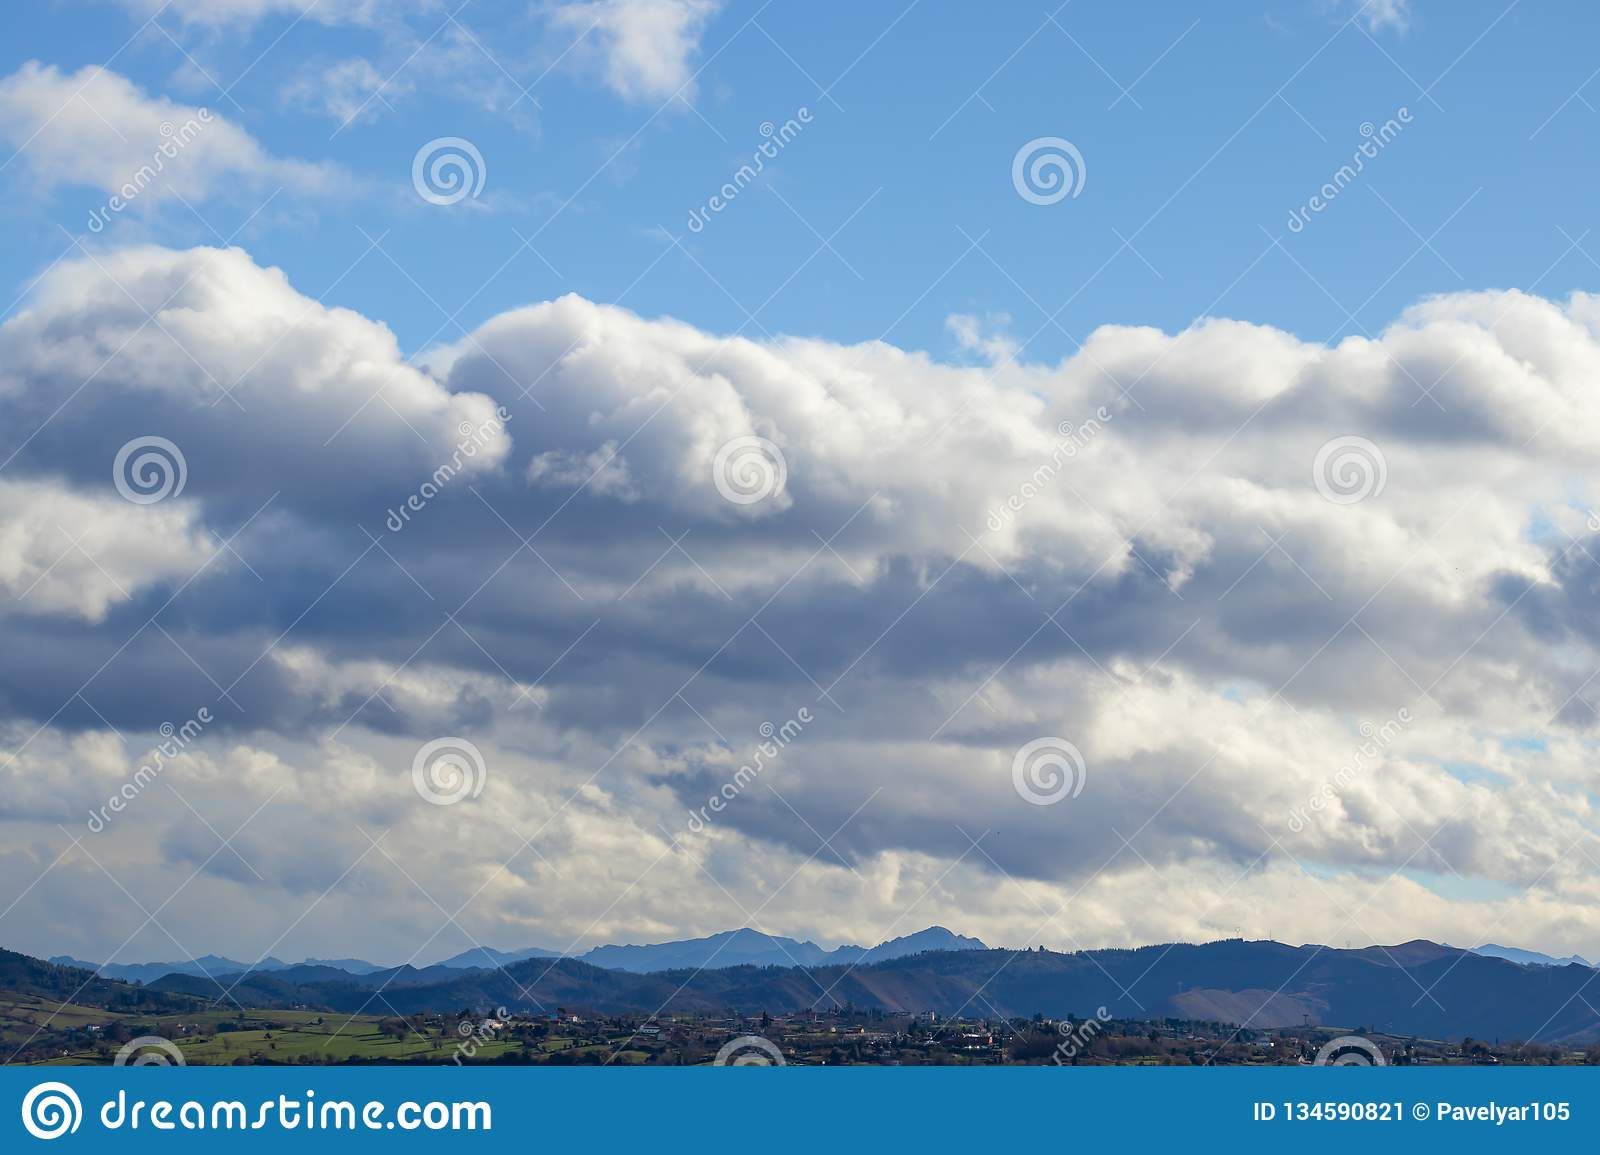 Mountain range in clear weather in contrasting rain clouds before the rain